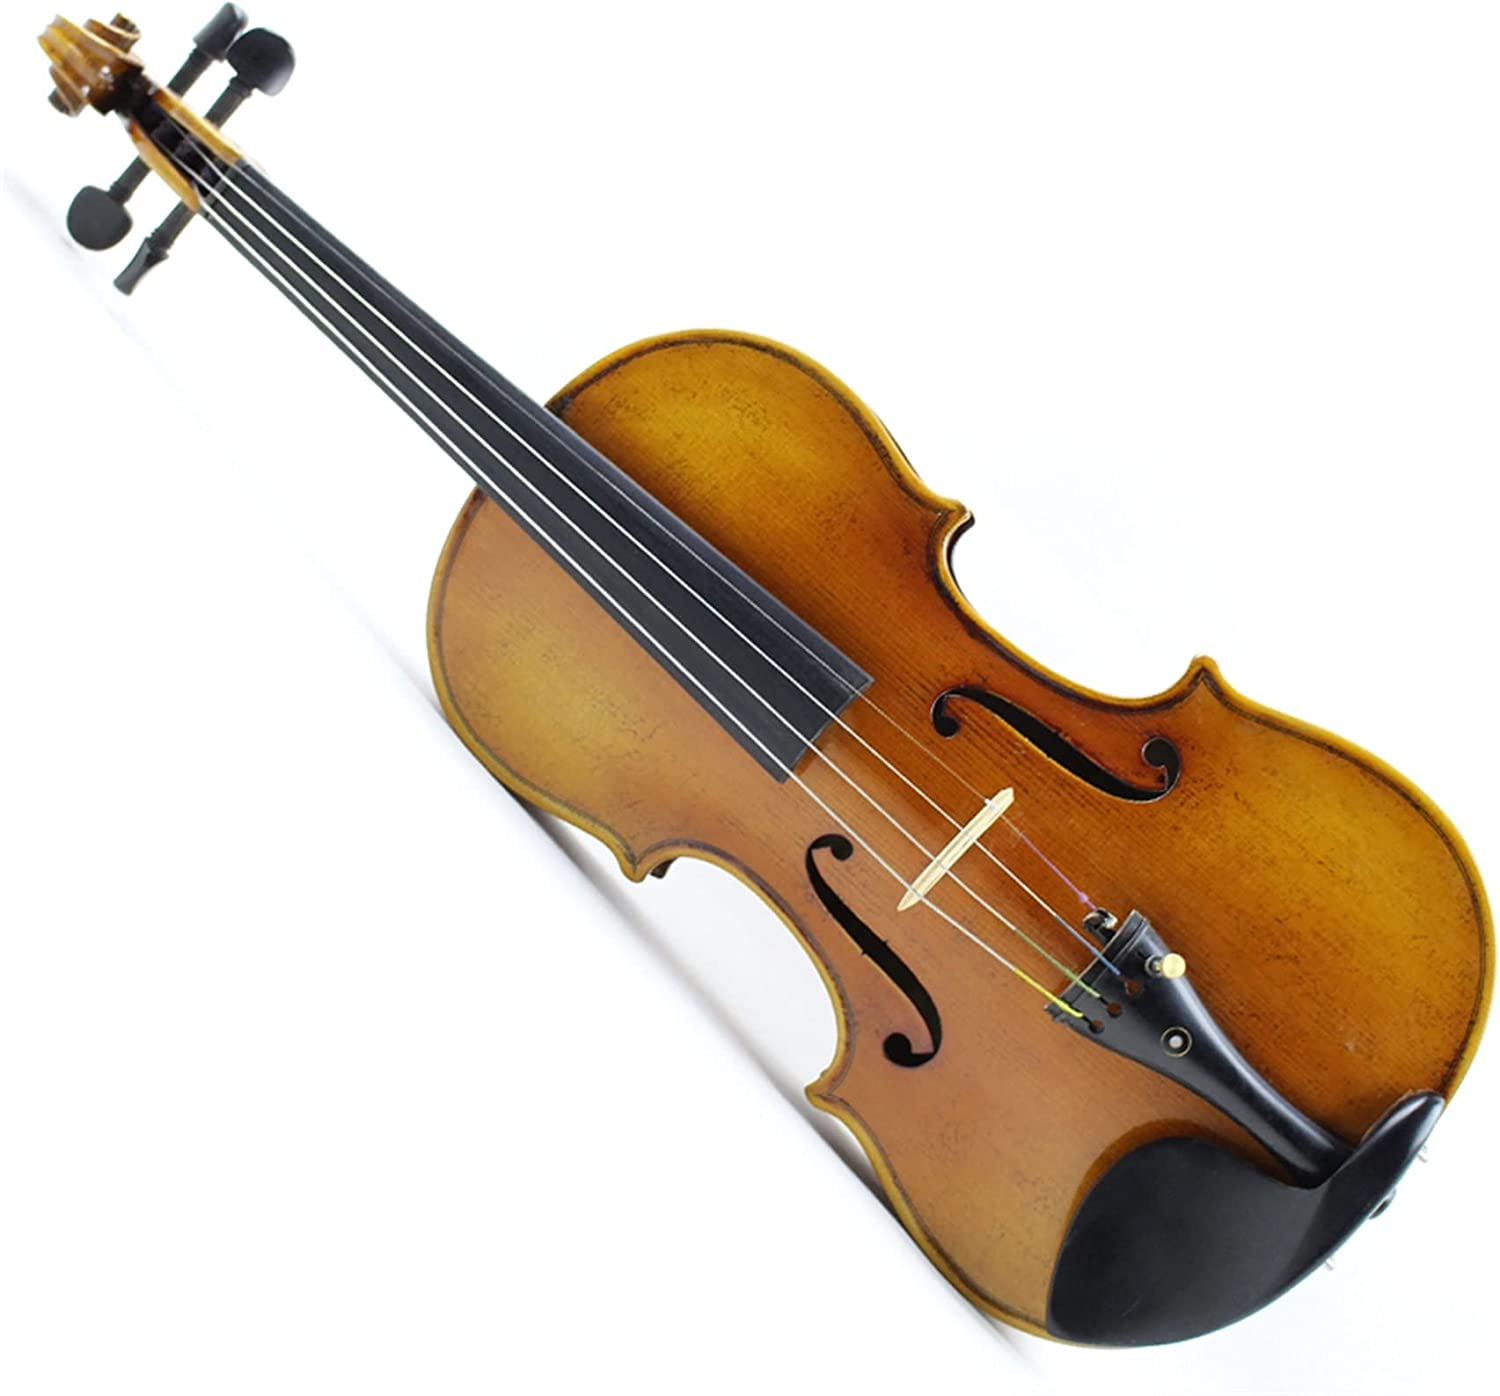 Max 81% OFF 4 Antique Oil Varnished Violin 2021 autumn and winter new